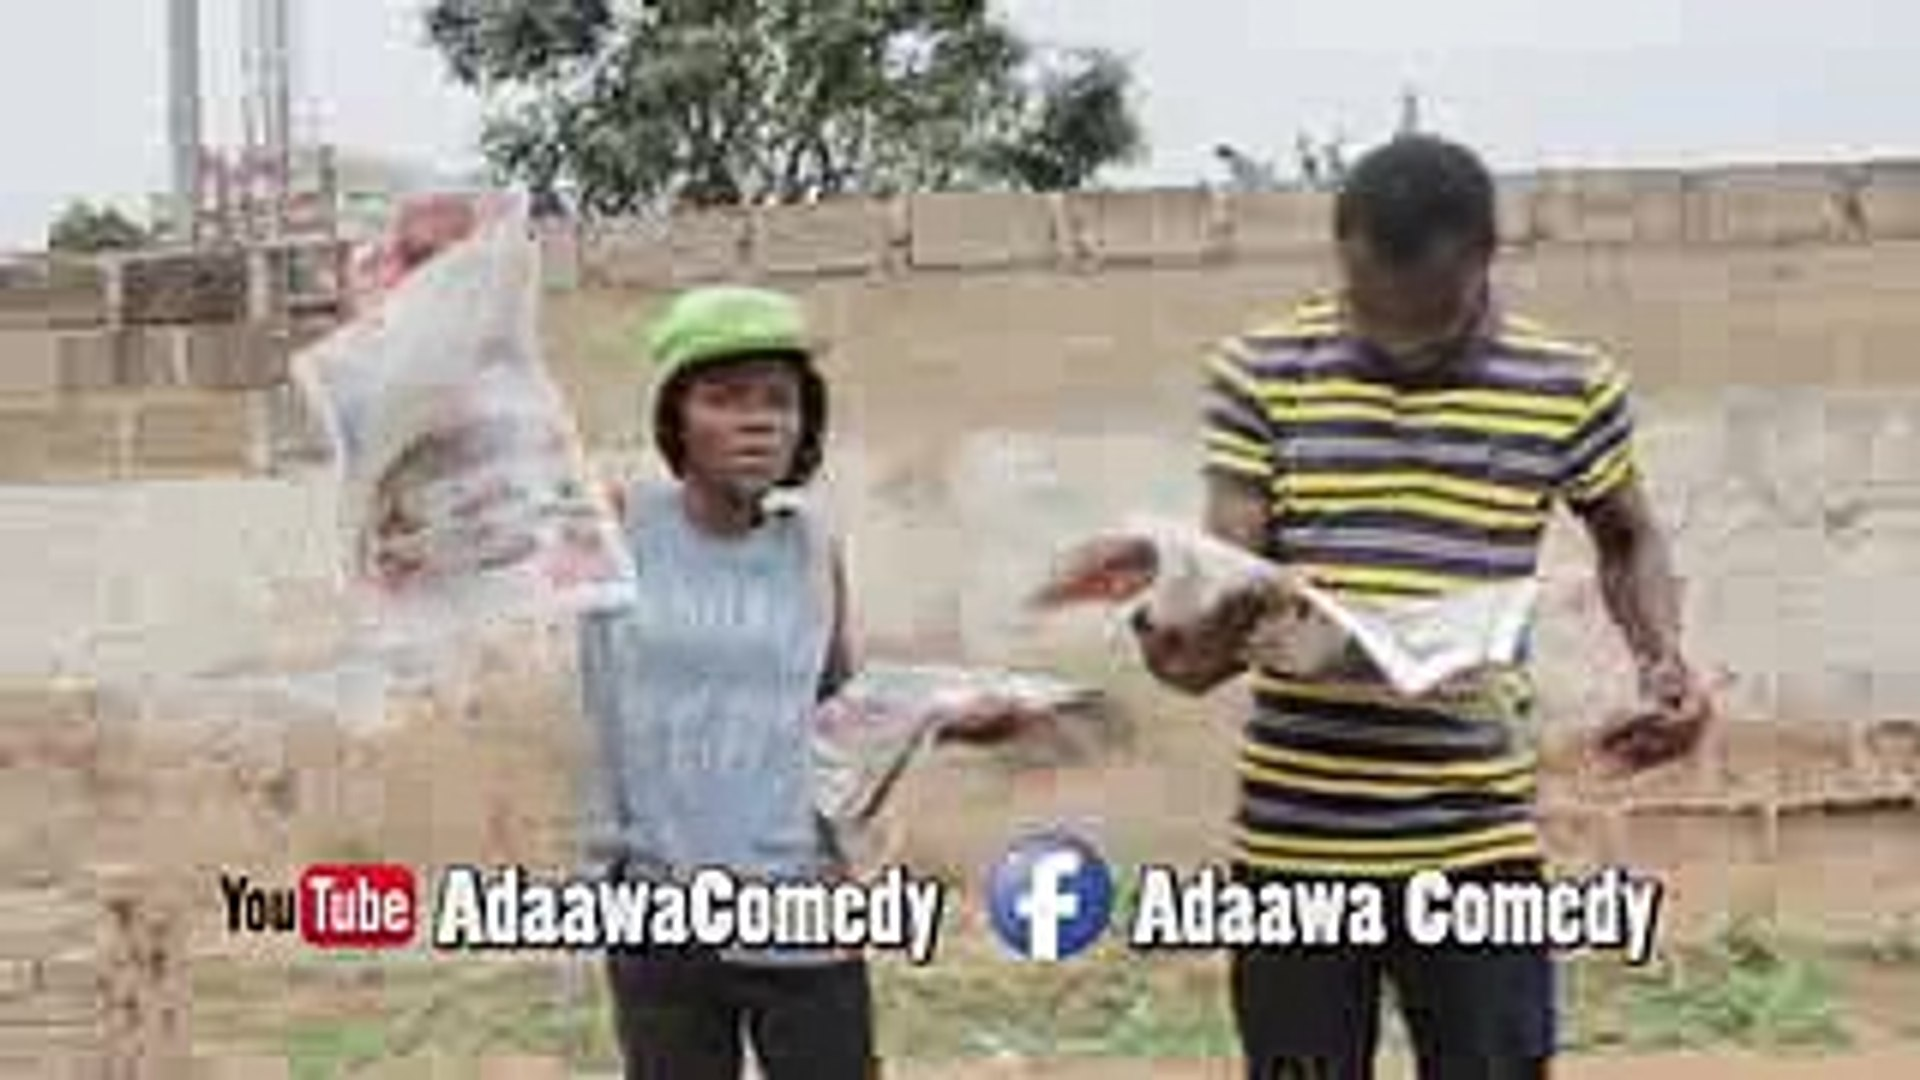 I WON T BUY - Funny Ghana Nigeria COMEDY - Adjoa Selfie comedy